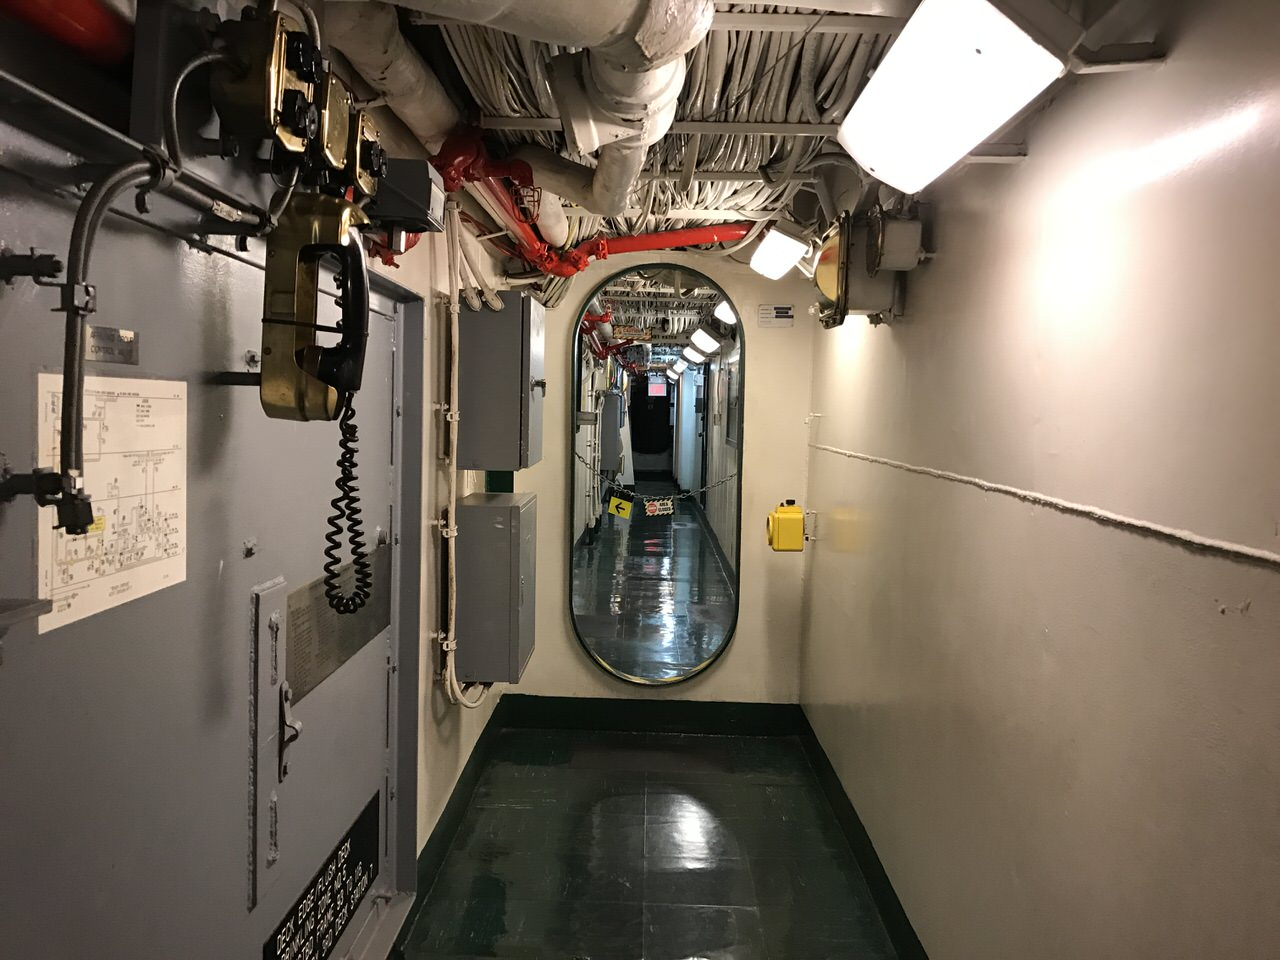 Uss midway museum 0597